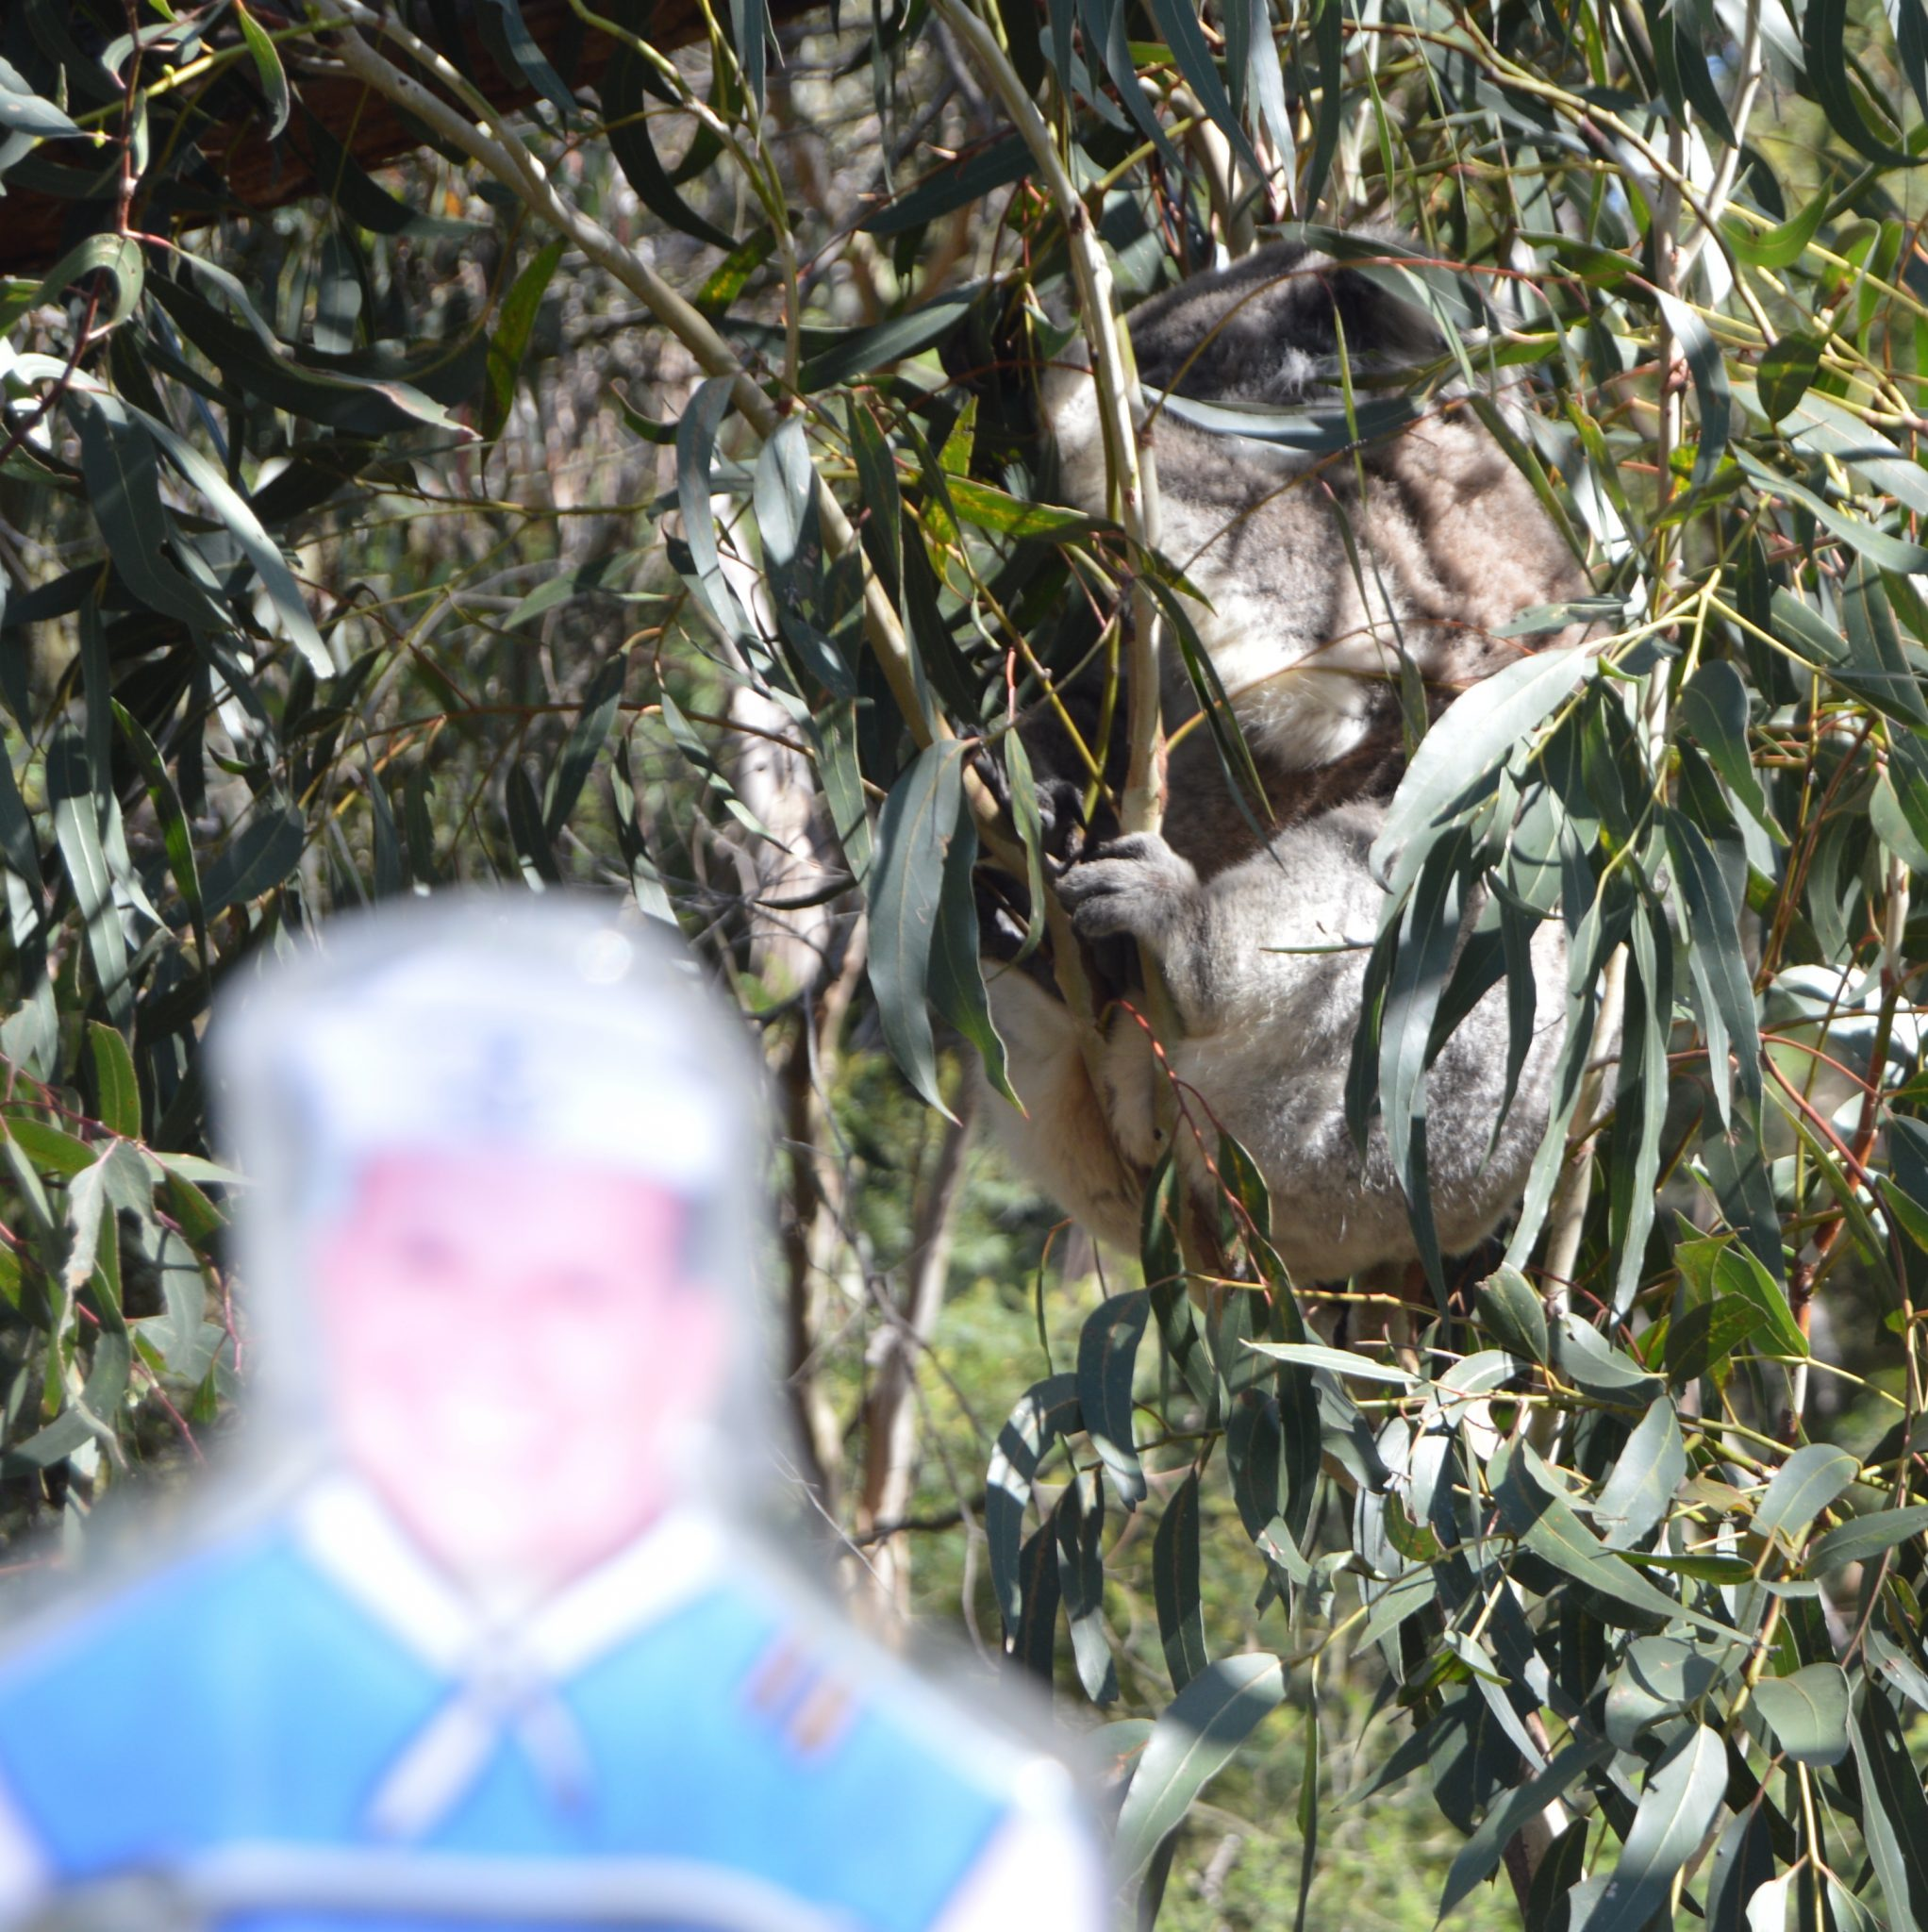 134.1. Flat Mr. Davis saw this very sleepy koala in a eucalyptus tree on Phillip Island, Australia, by the Bass Strait